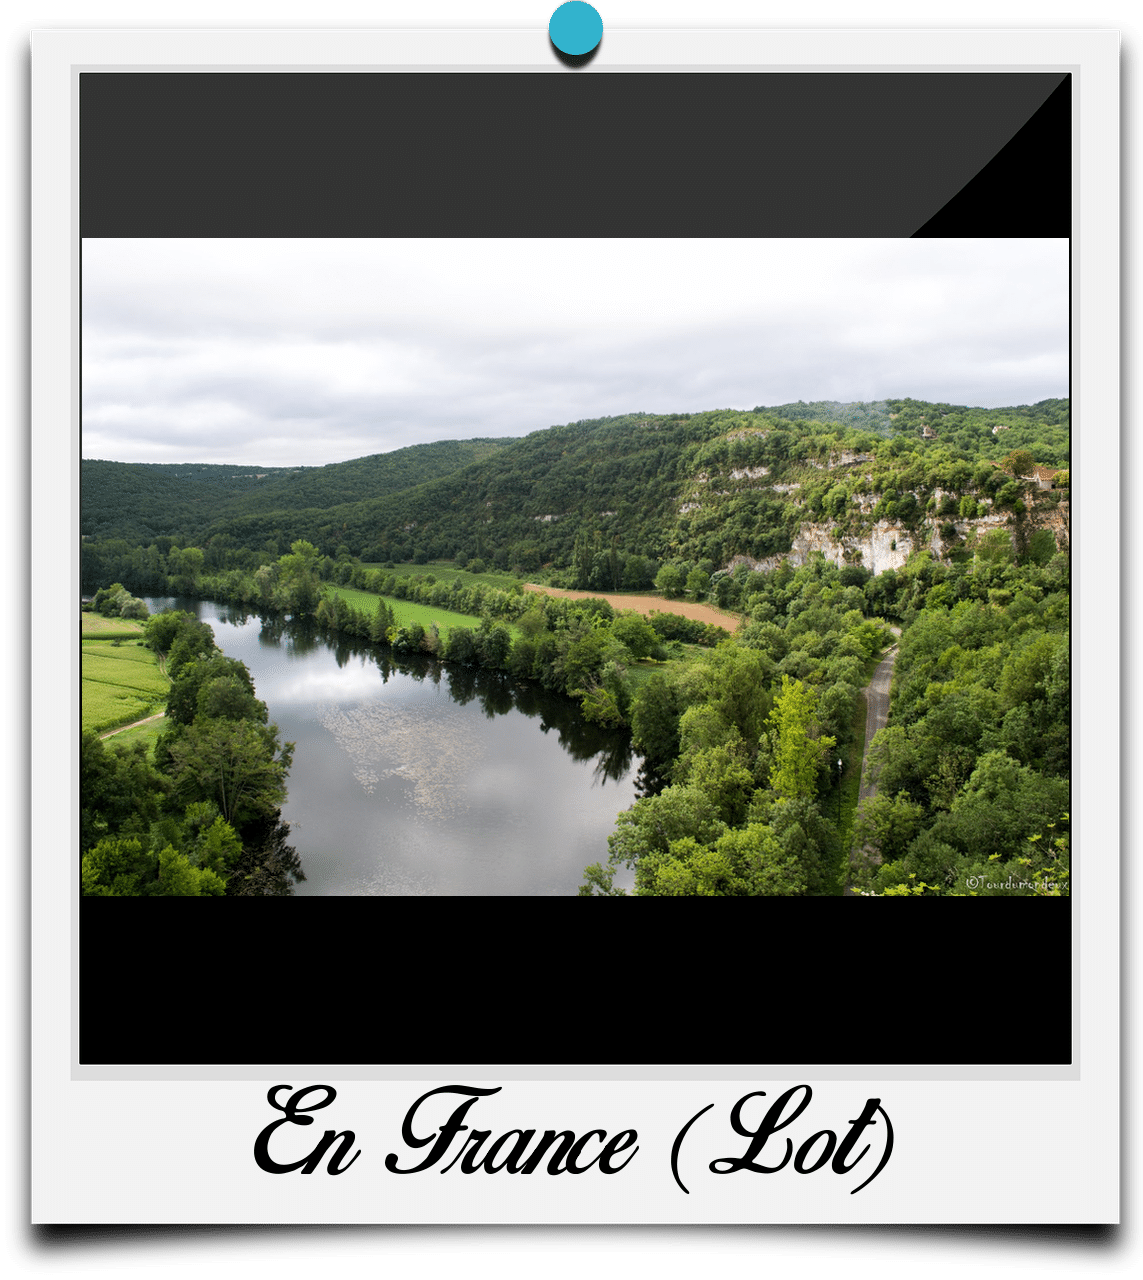 France-Lot-tourdumondeux